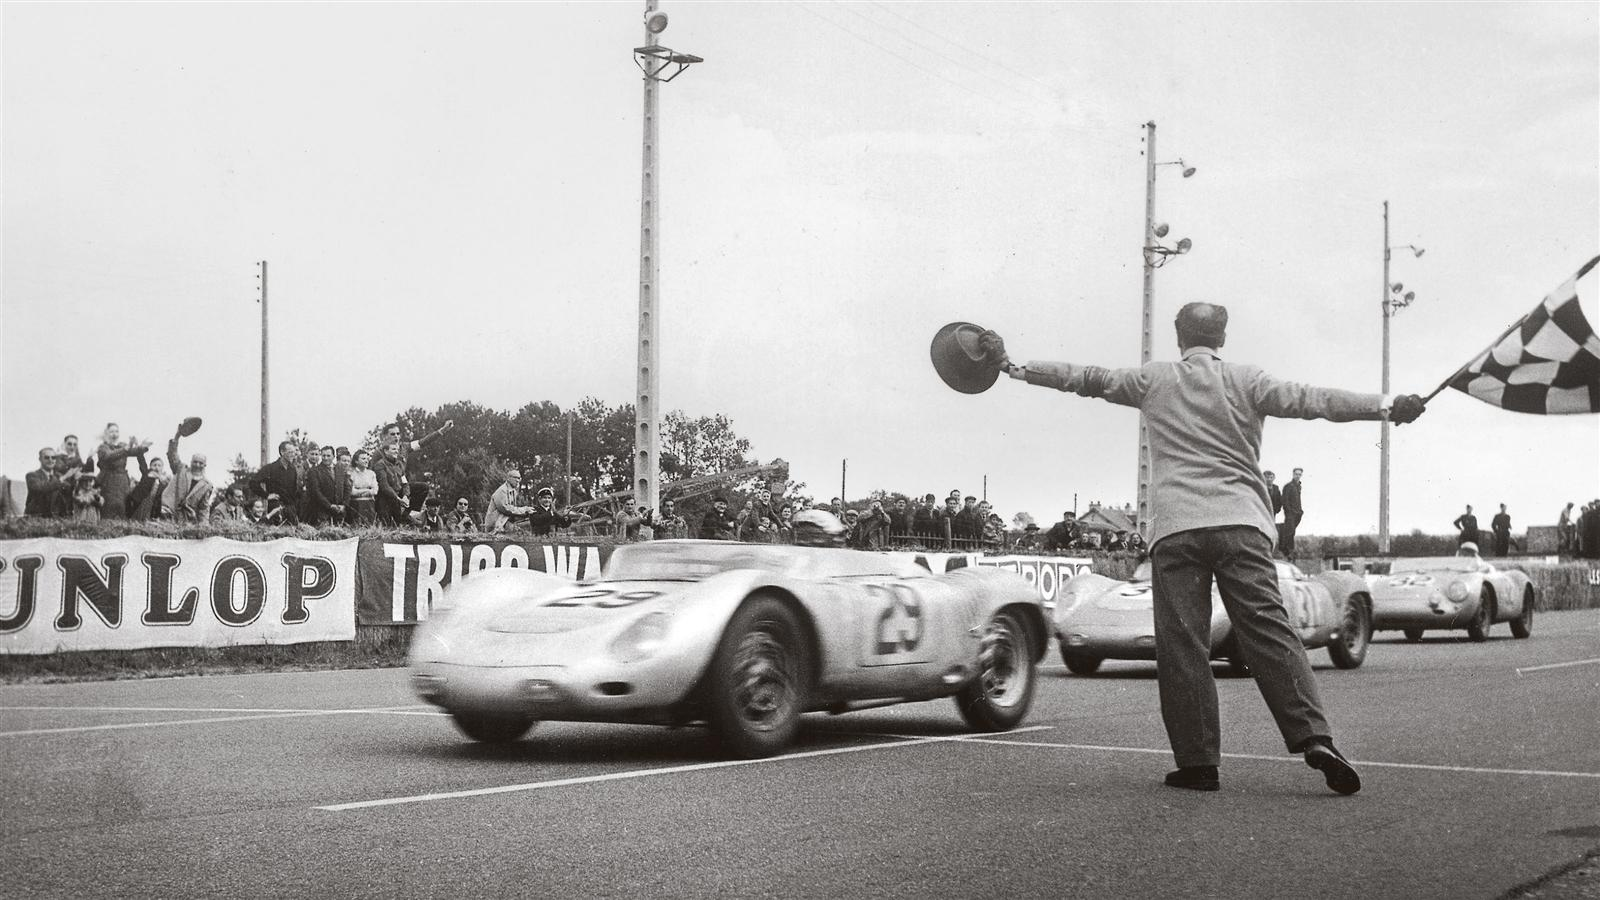 Jean Behra driving a 718 RSK Spyder during the 24 Hours of Le Mans in 1958